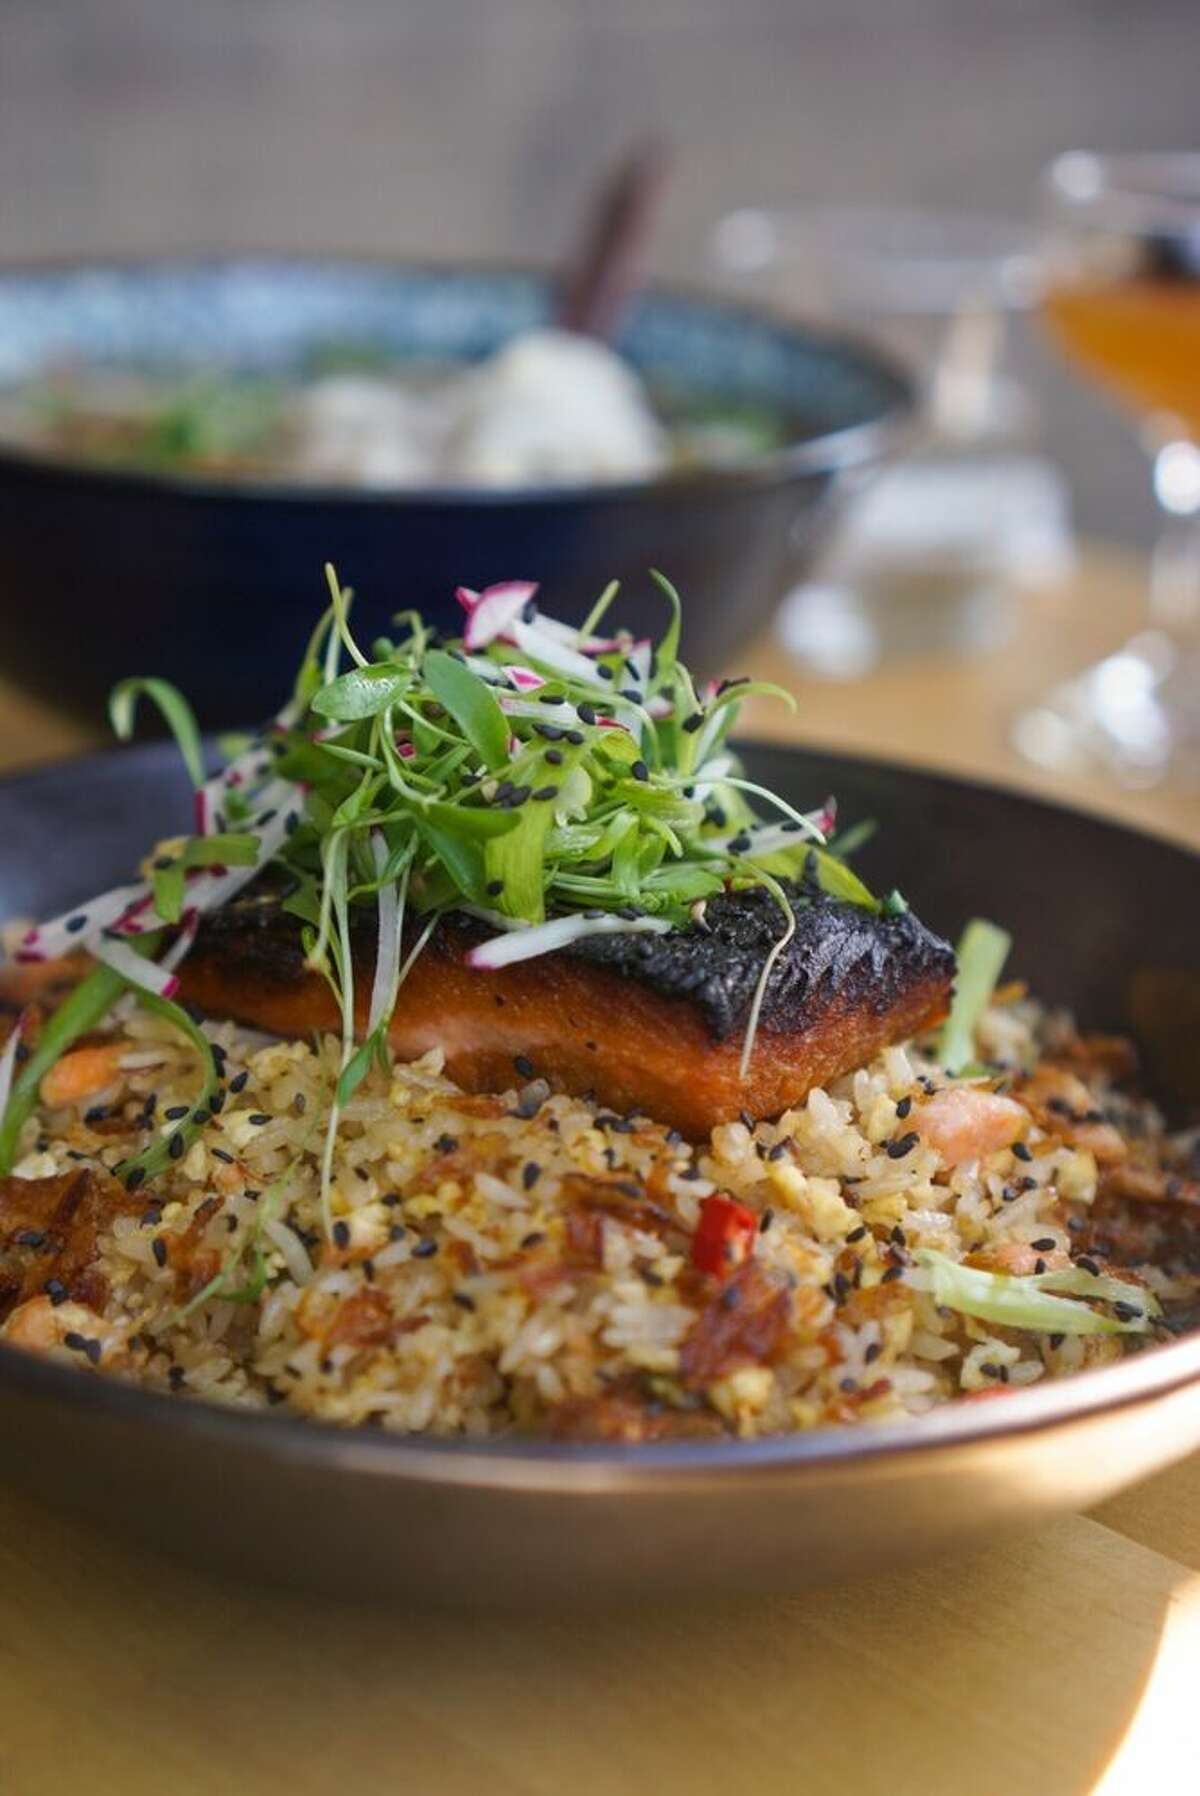 Bainbridge Island's Ba Sa restaurant is creating a Vietnamese-inspired Thanksgiving feast for guests to enjoy from the comfort of their homes. Dinner includes a roasted double duck, honey walnut prawn toast, Chinese sausage with dried shrimp risotto and almond casava cake. Dinner for two is $150; dinner for four is $195. A la carte items are available, and pre-orders must be placed by Nov. 23. Pick up will be offered between 1 p.m.-5 p.m. on Nov. 26.